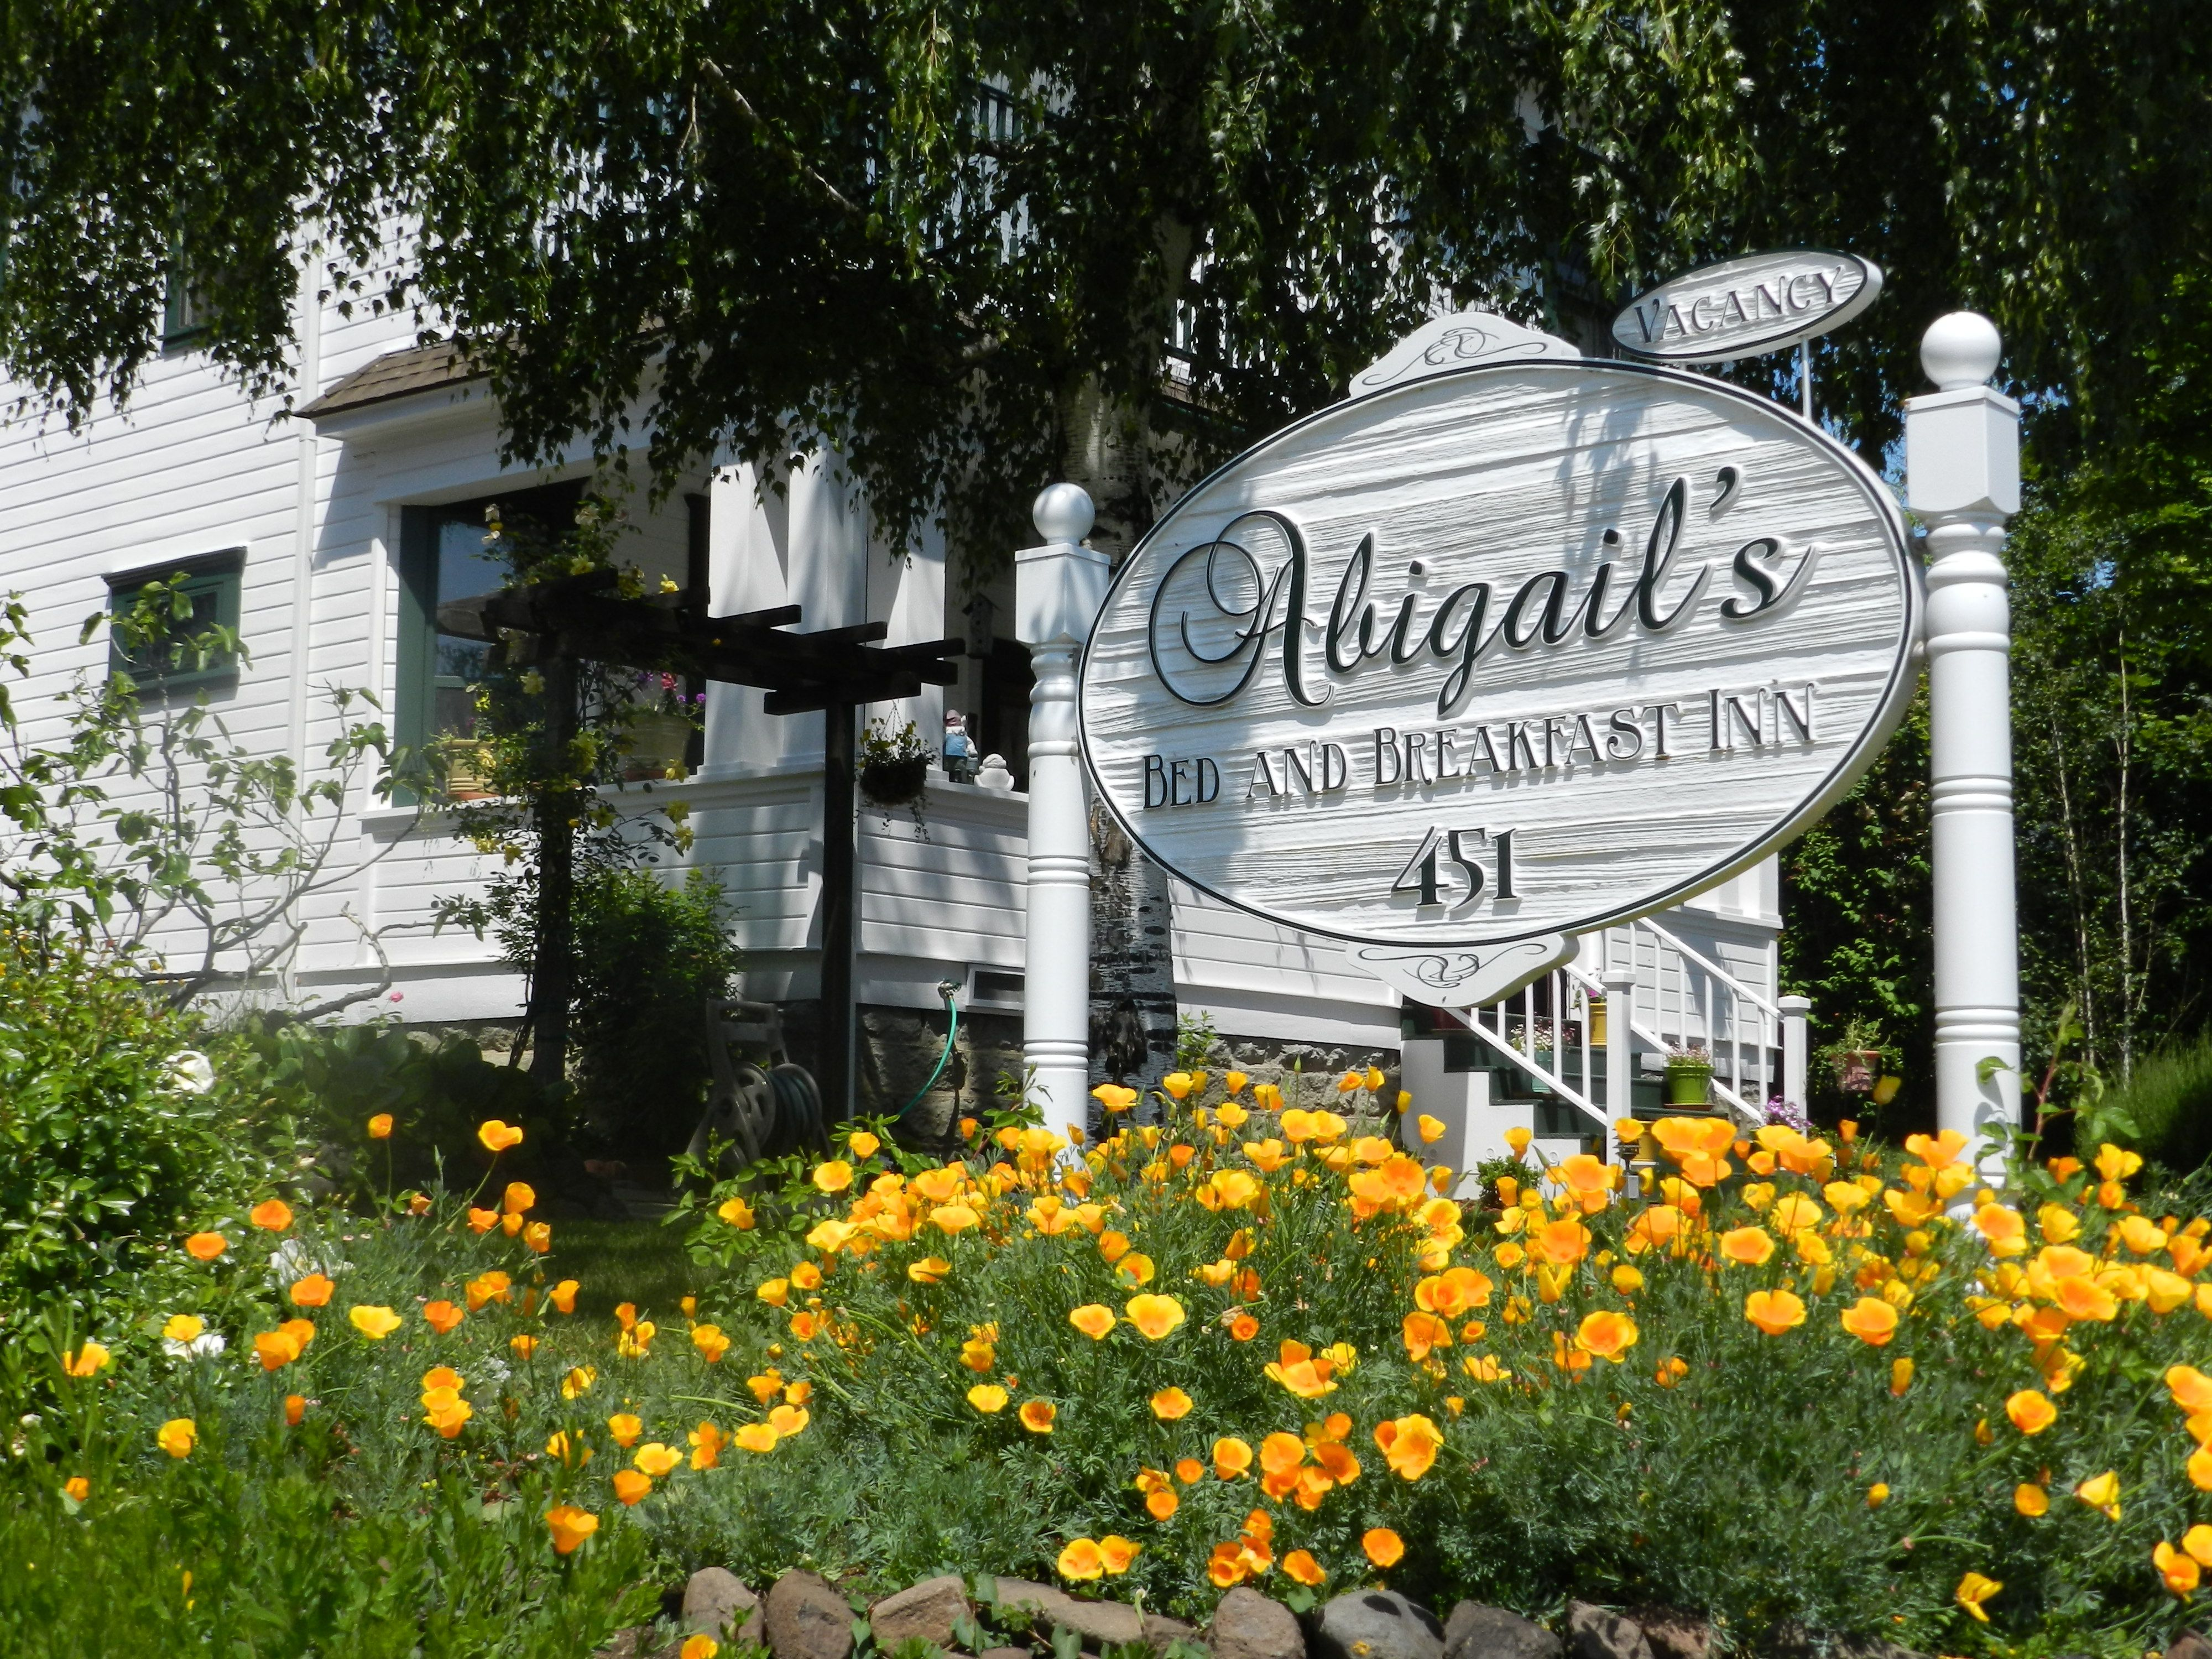 Permalink to 31 + pics of Bed And Breakfast Ashland Oregon